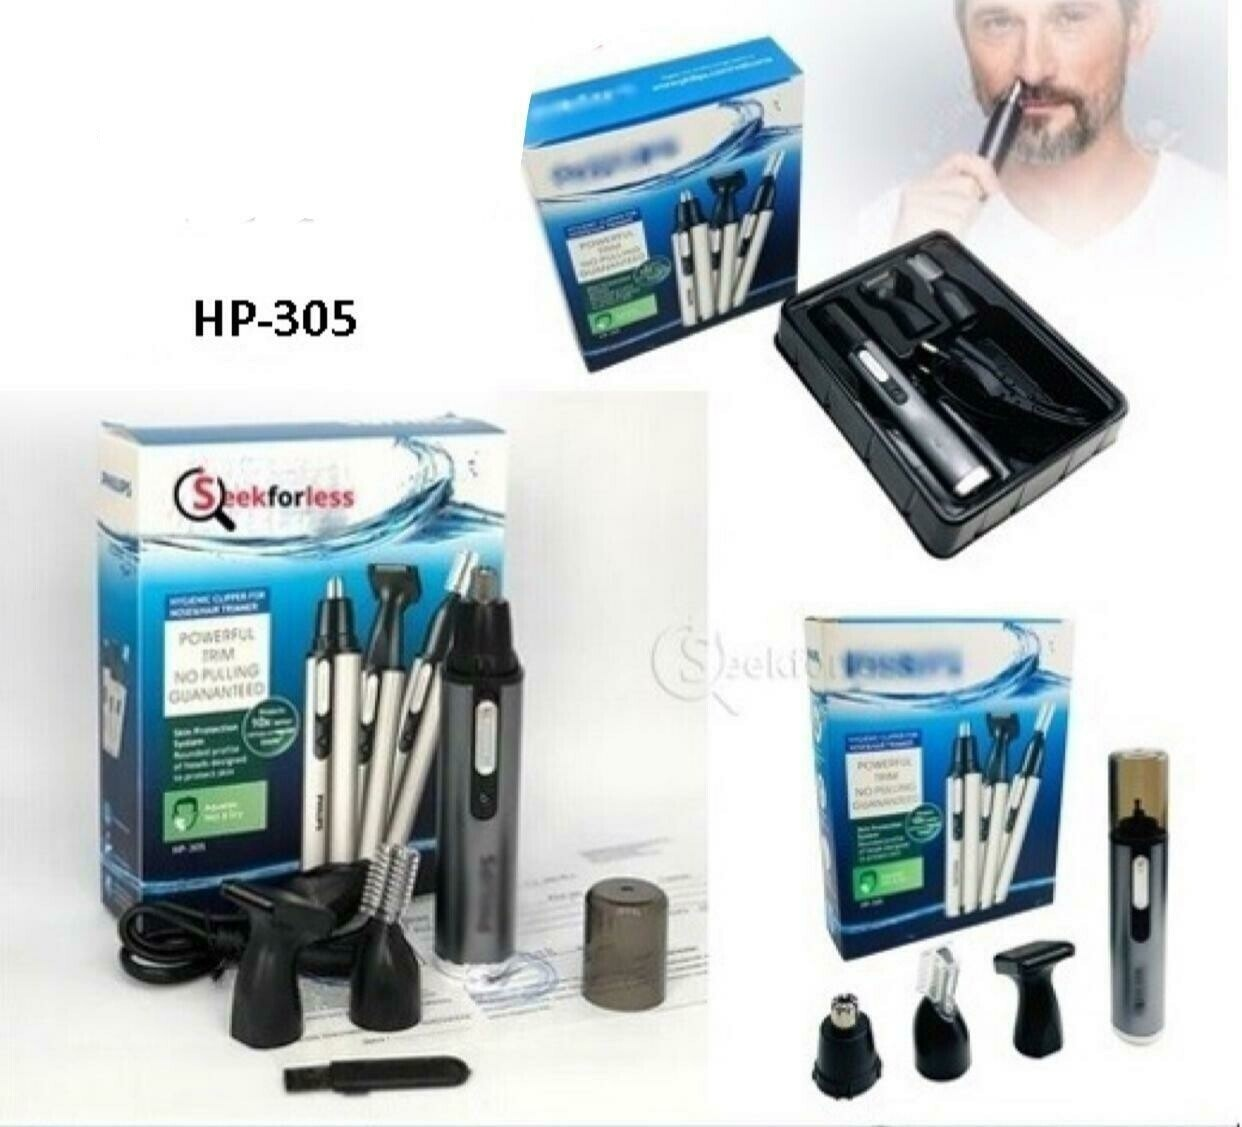 Nose & Hair Trimmer (HP-305)